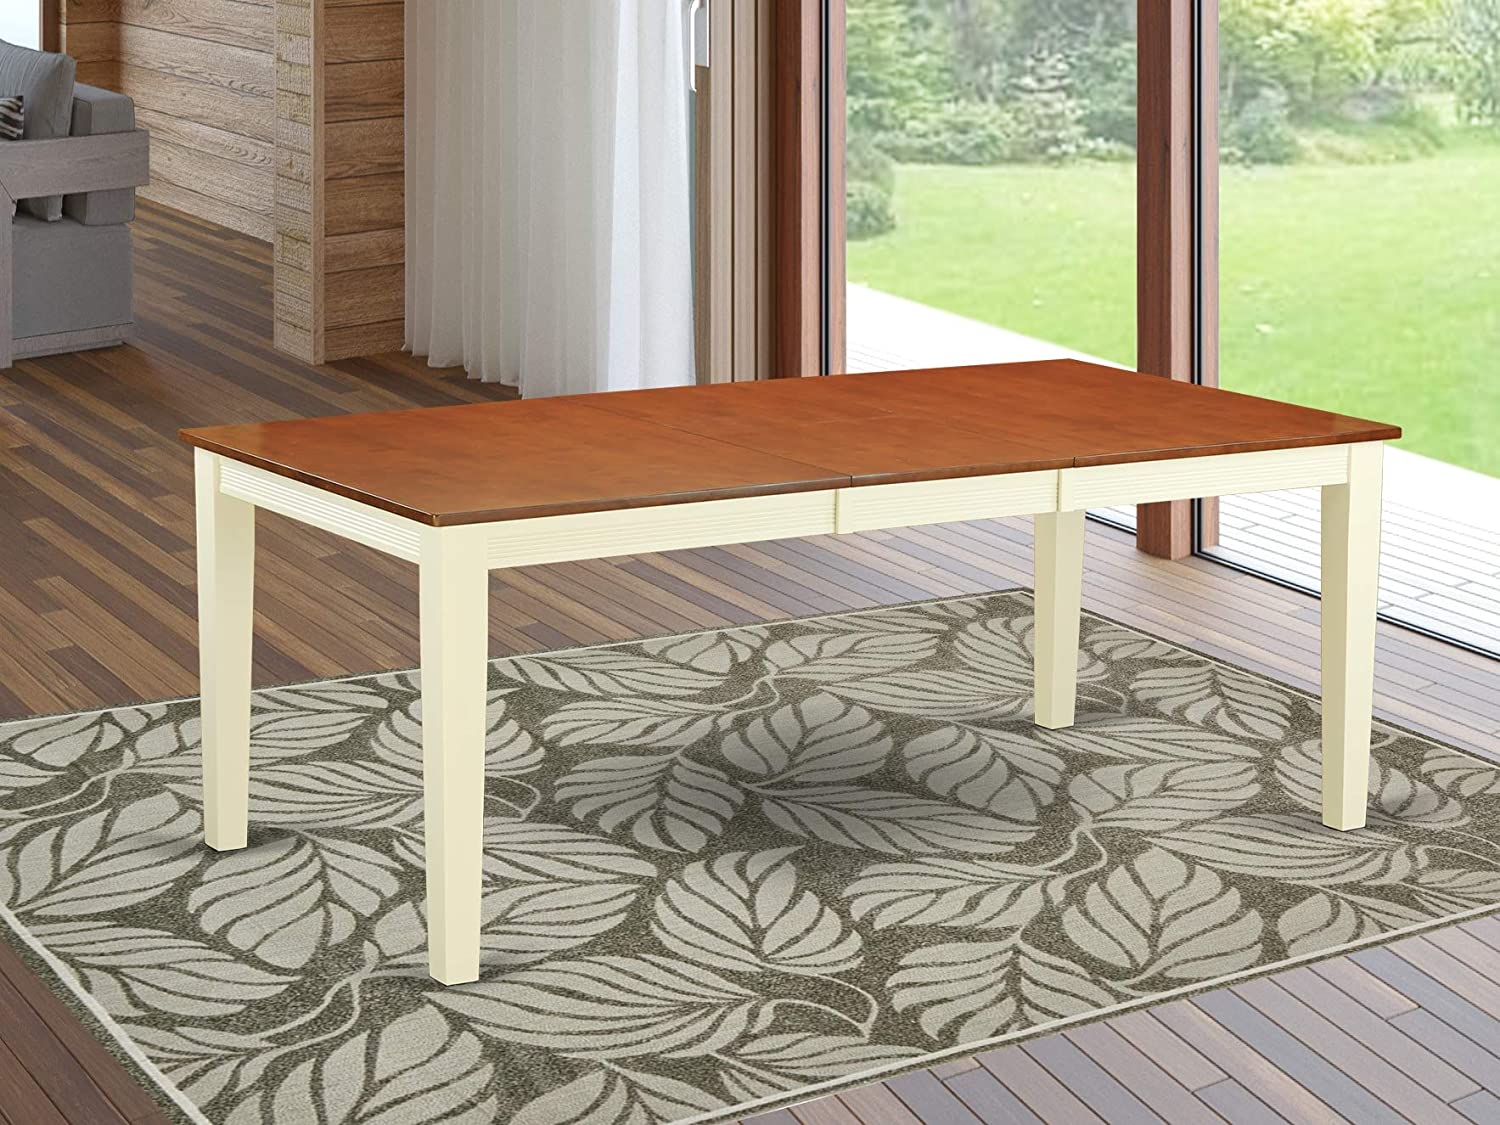 East West Furniture Butterfly Leaf Quincy Dining Table - Cherry Table Top and Buttermilk Finish Stylish 4 Legs Hardwood Dining Room Table